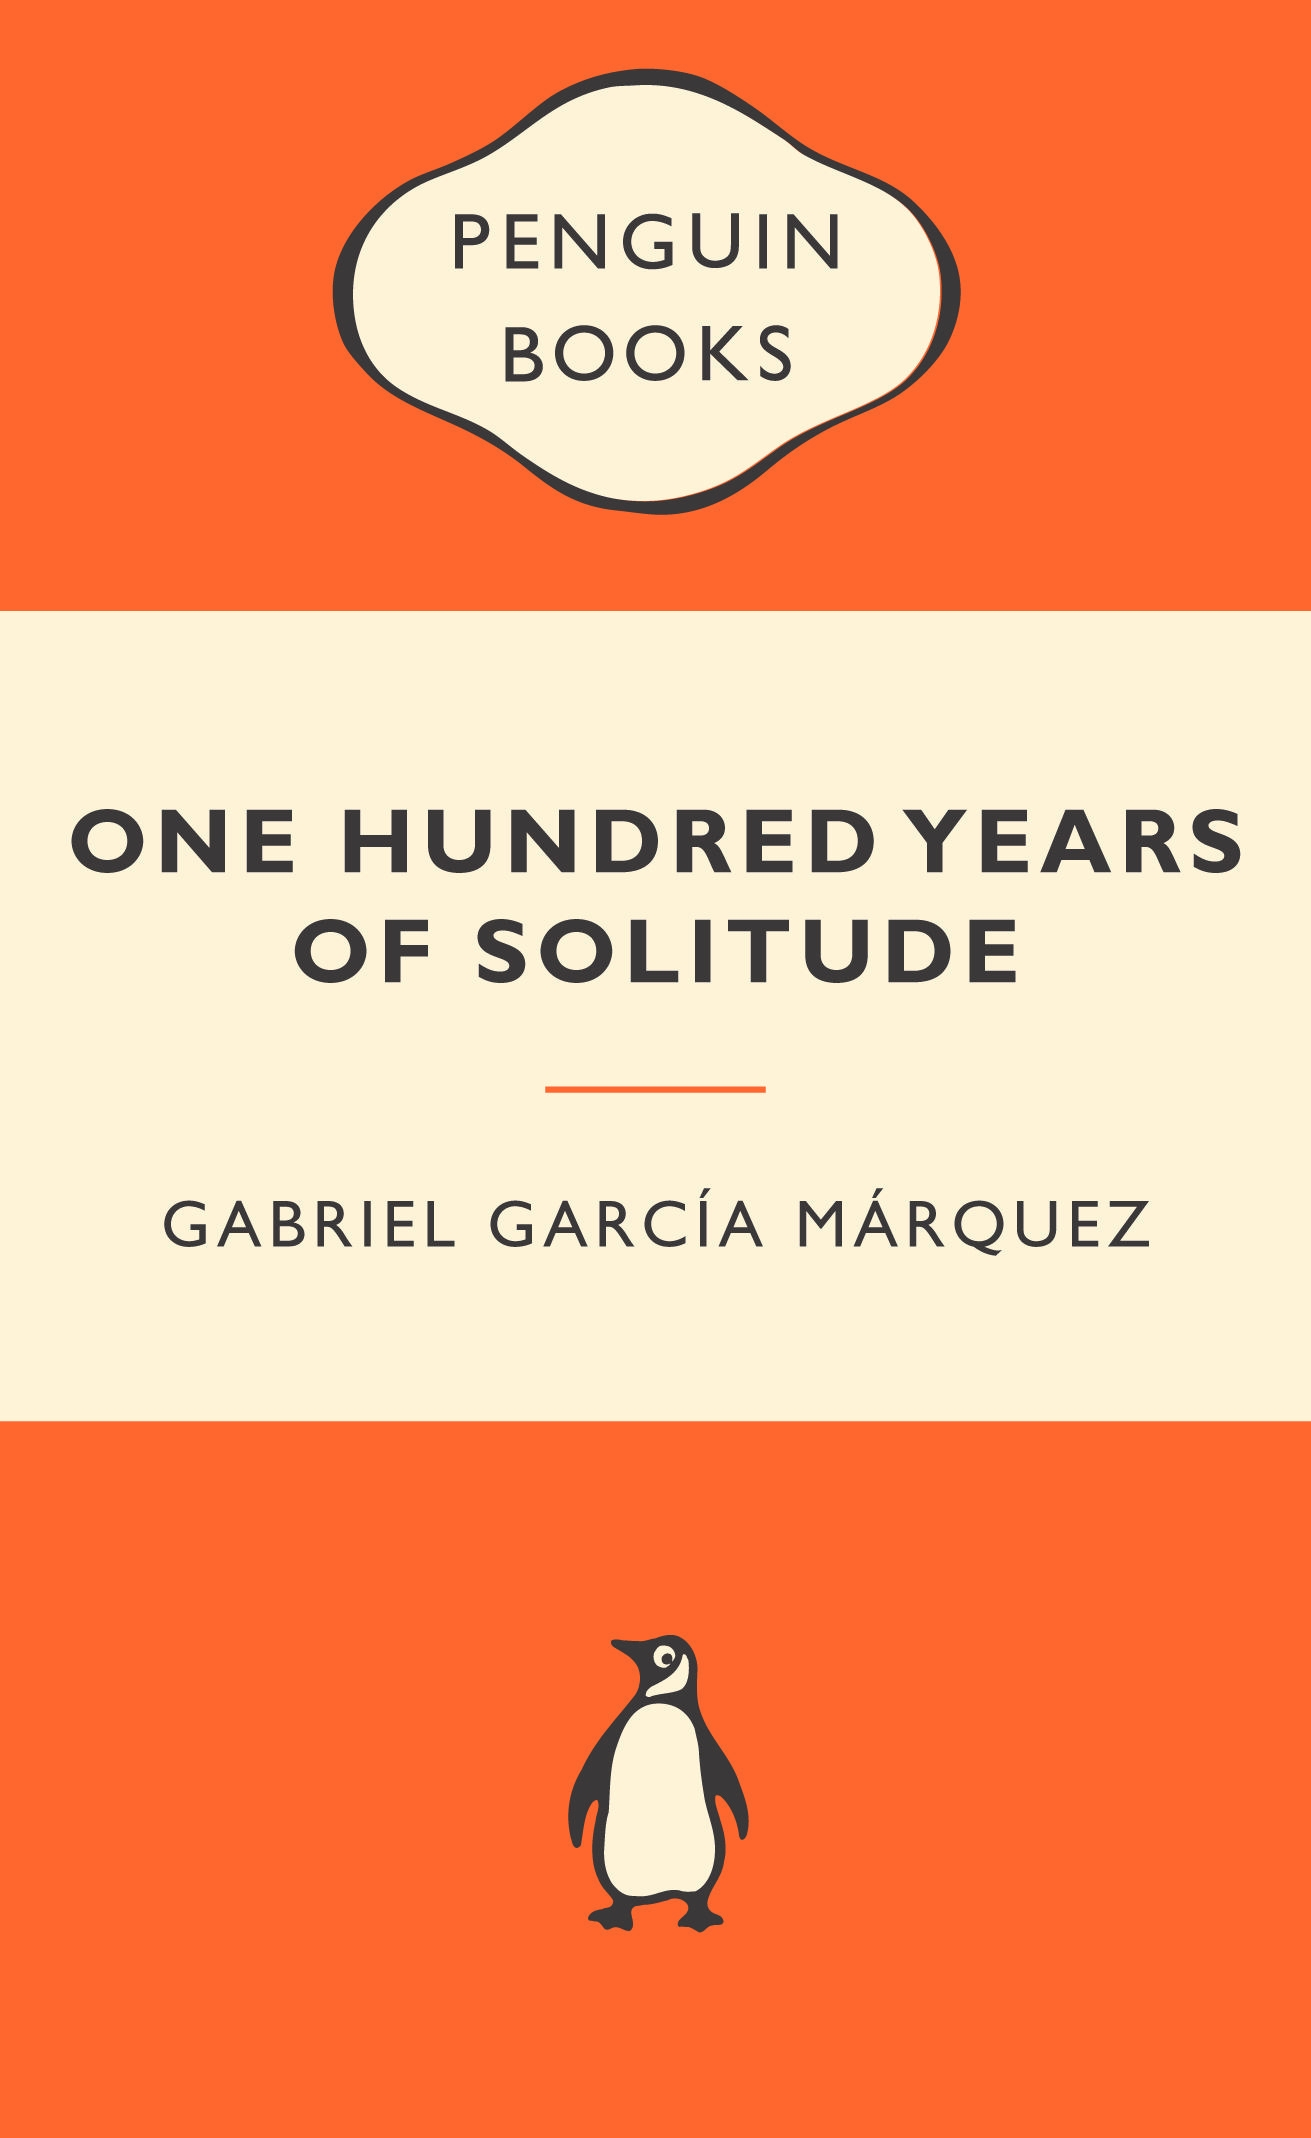 one hundred years of solitude book images one hundred years of solitude book